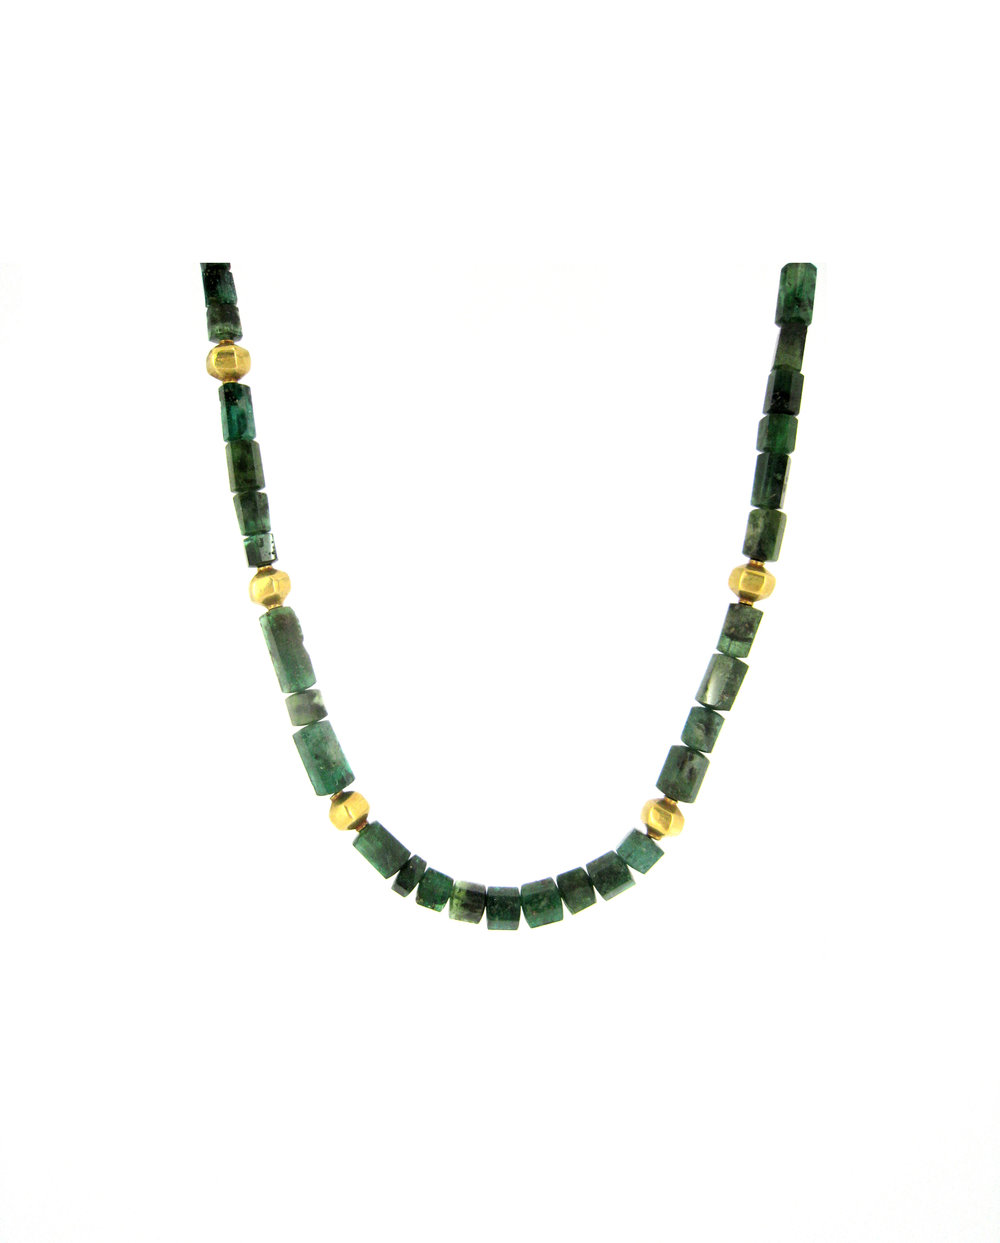 Faceted emerald with gold spacers necklace